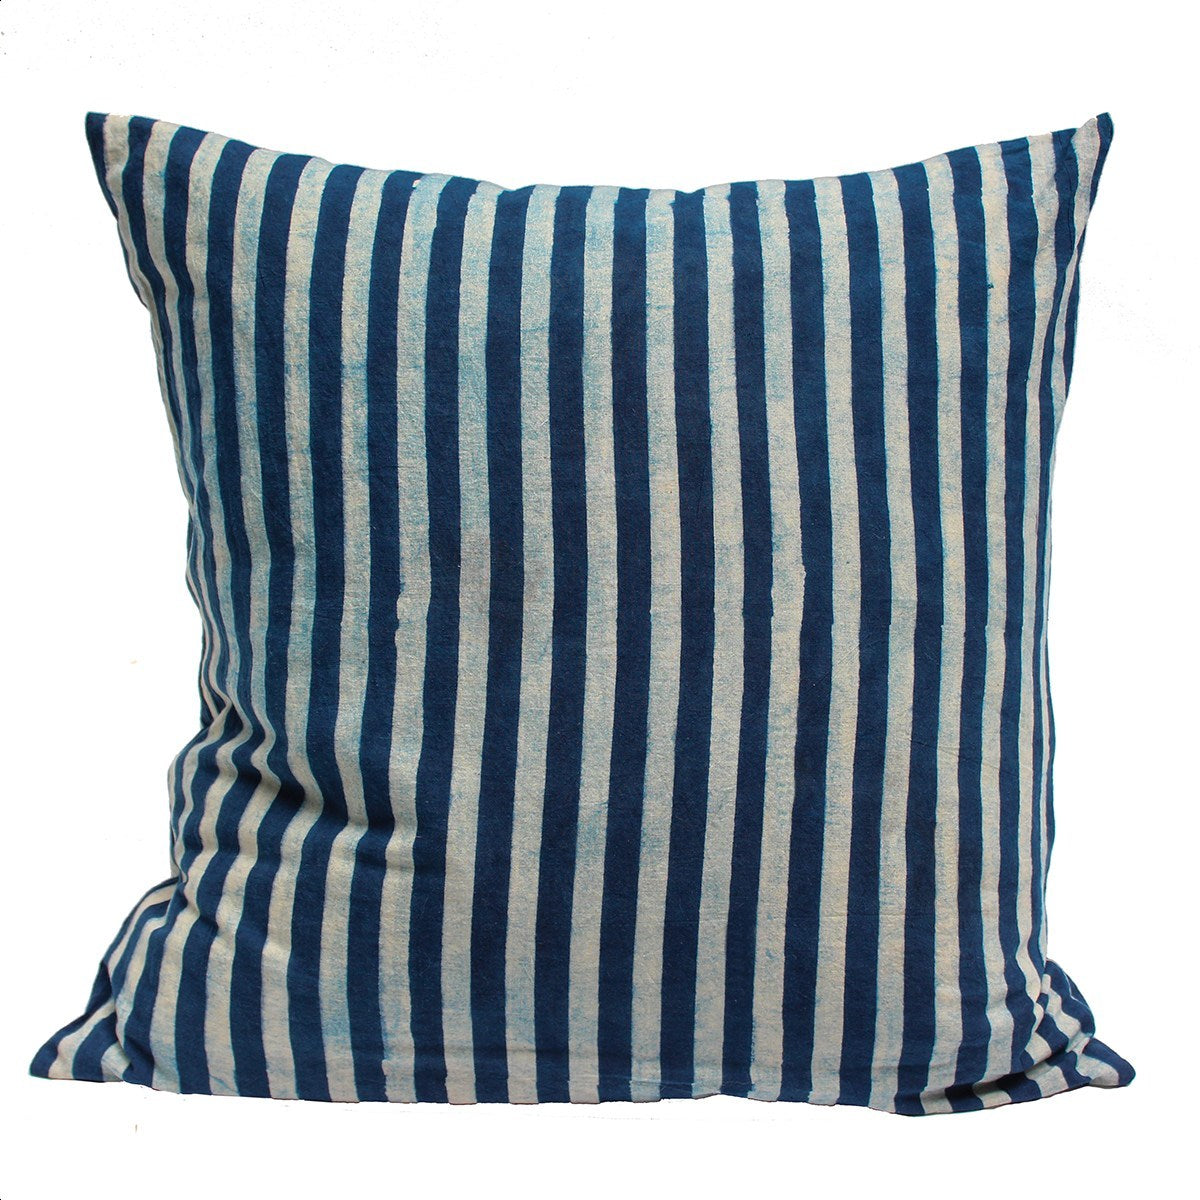 Striped indigo dyed pillow